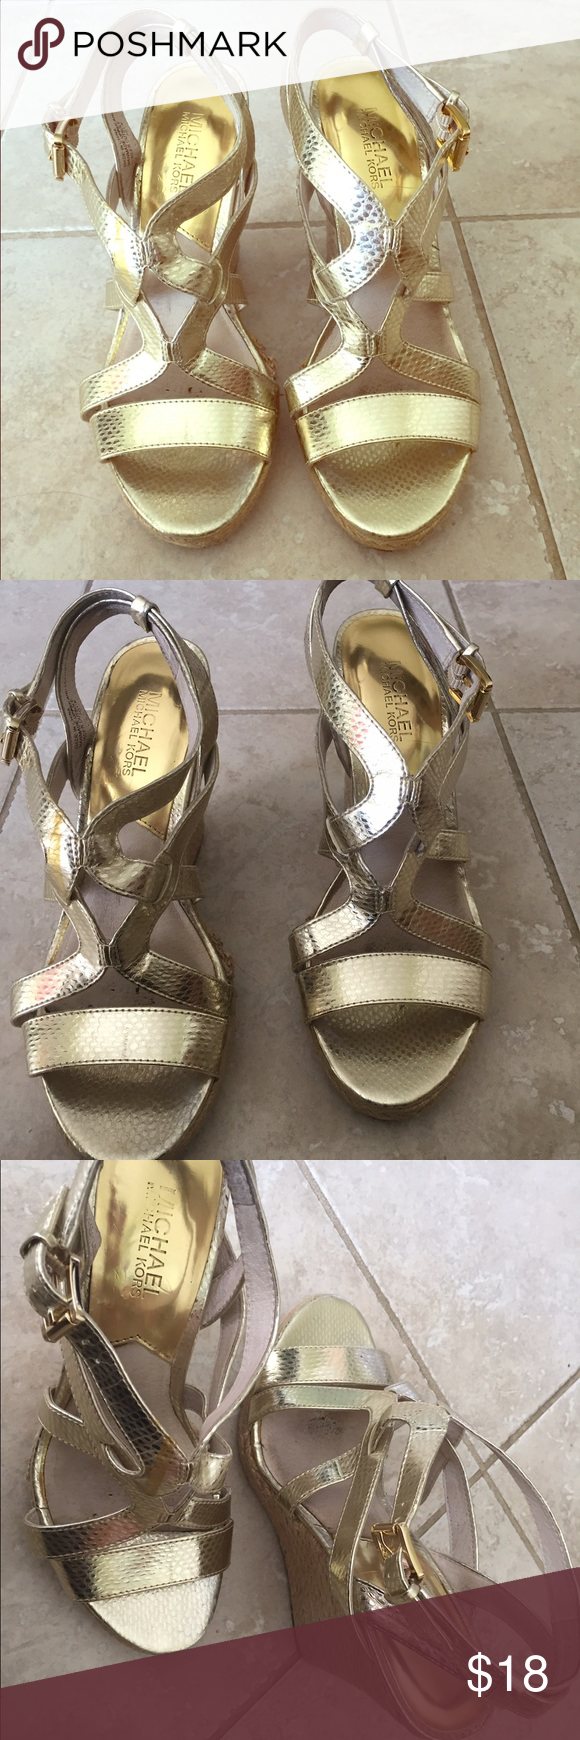 MICHAEL BY Michael Kors Gold Wedges Sz 8 Michael by MK Gold Wedges. Cover shot is true gold color, they're shimmery and beautiful. Size 8. Worn for a weekend in Vegas, so not like new, but very good condition. Make an offer. Only getting rid of because they no longer fit after having babies! MICHAEL Michael Kors Shoes